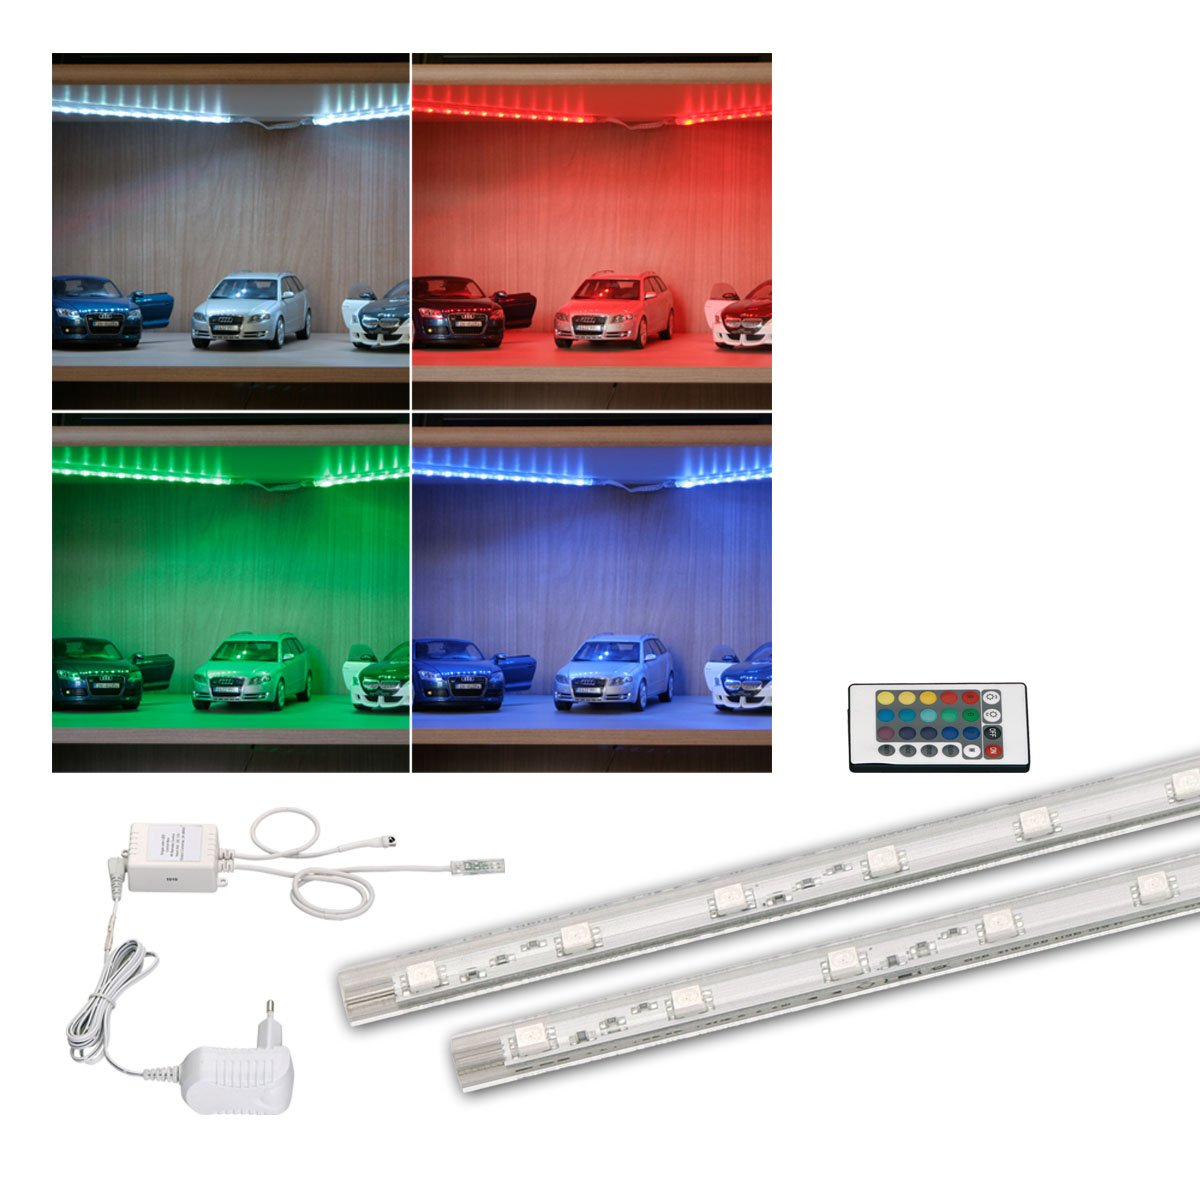 Rgb Led Strip 2 X 40 Cm With Infra Red Remote Control 2 X 6 Smd